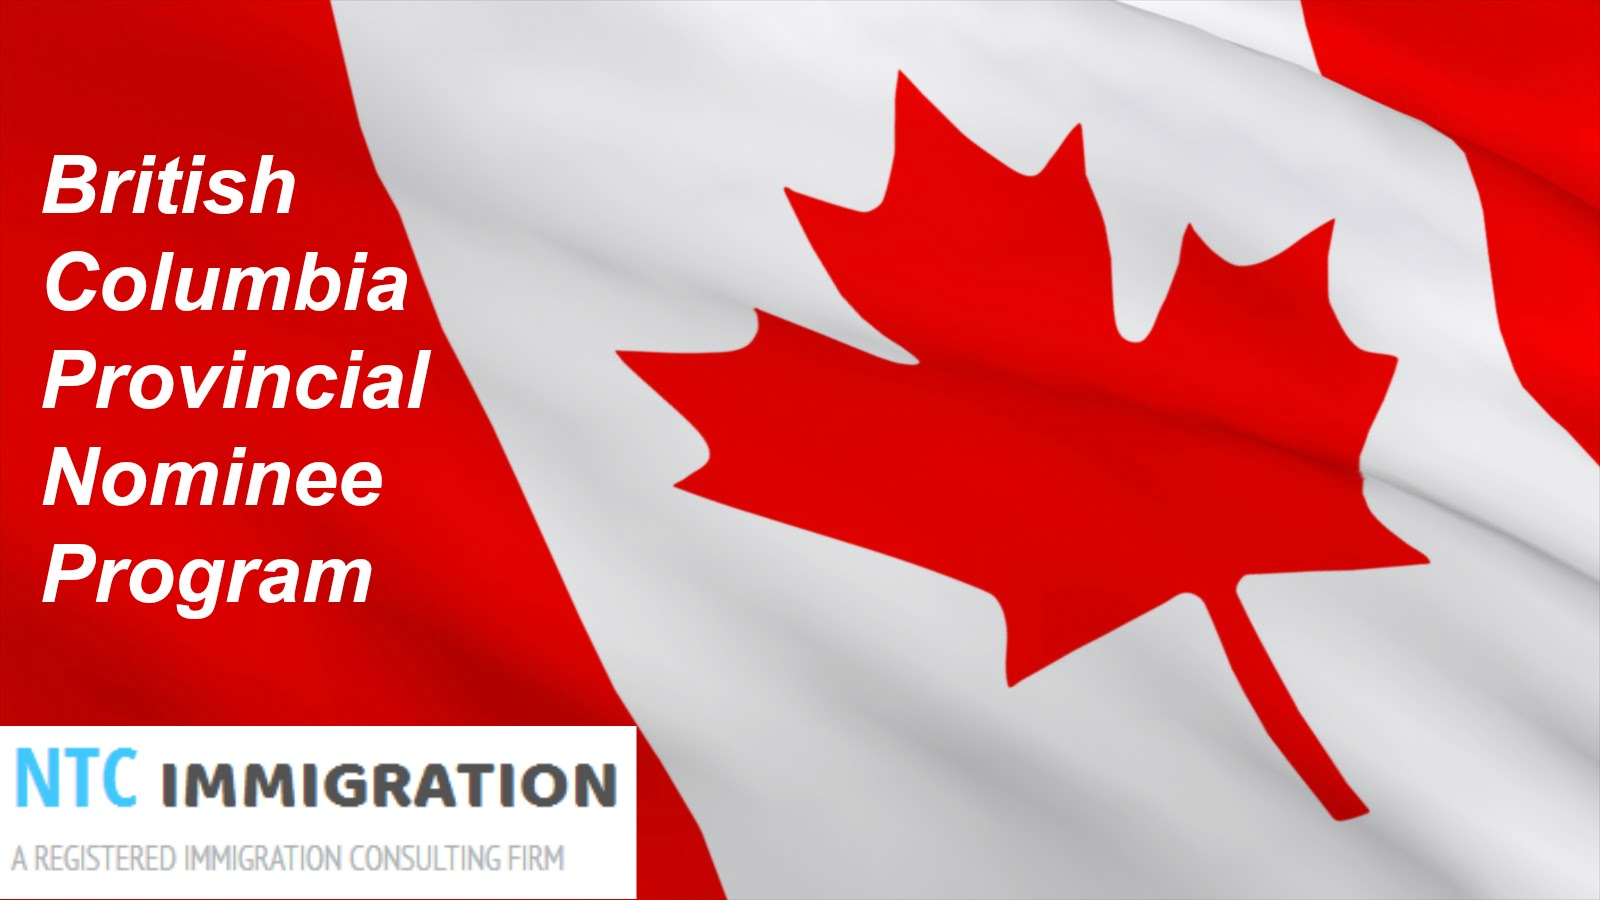 All That You Need to Know About the British Columbia Provincial Nominee Program